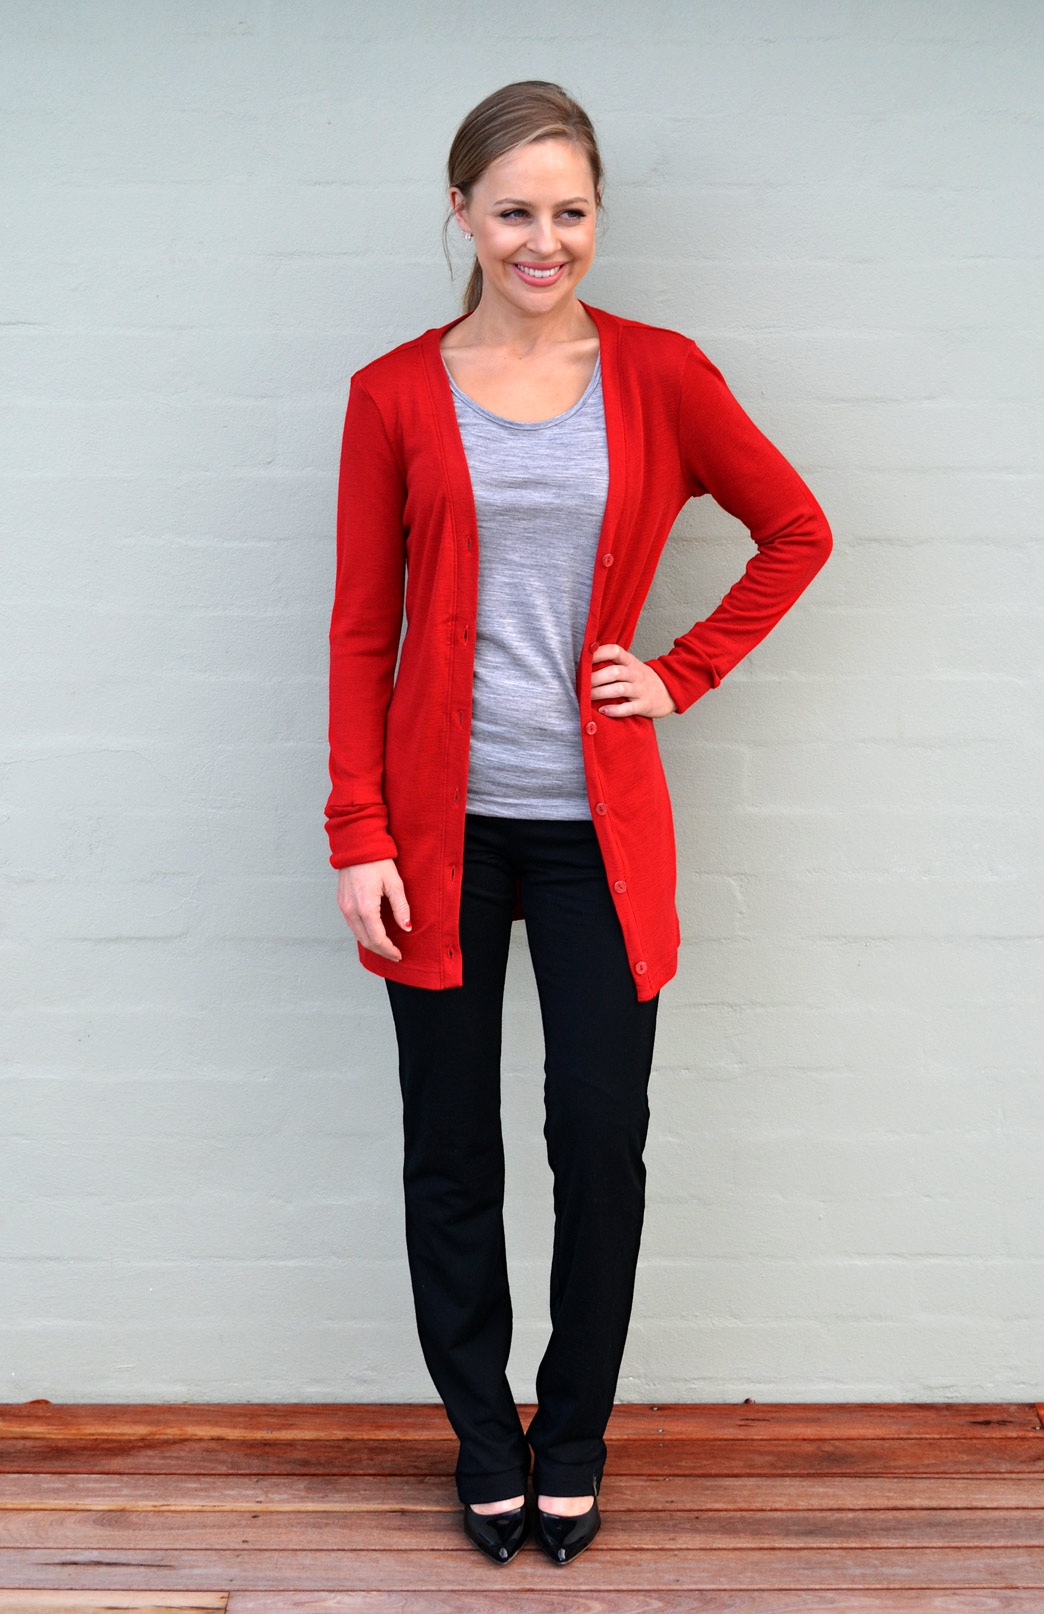 Button Cardigan - Women's Flame Red Wool Cardigan with Buttons - Smitten Merino Tasmania Australia